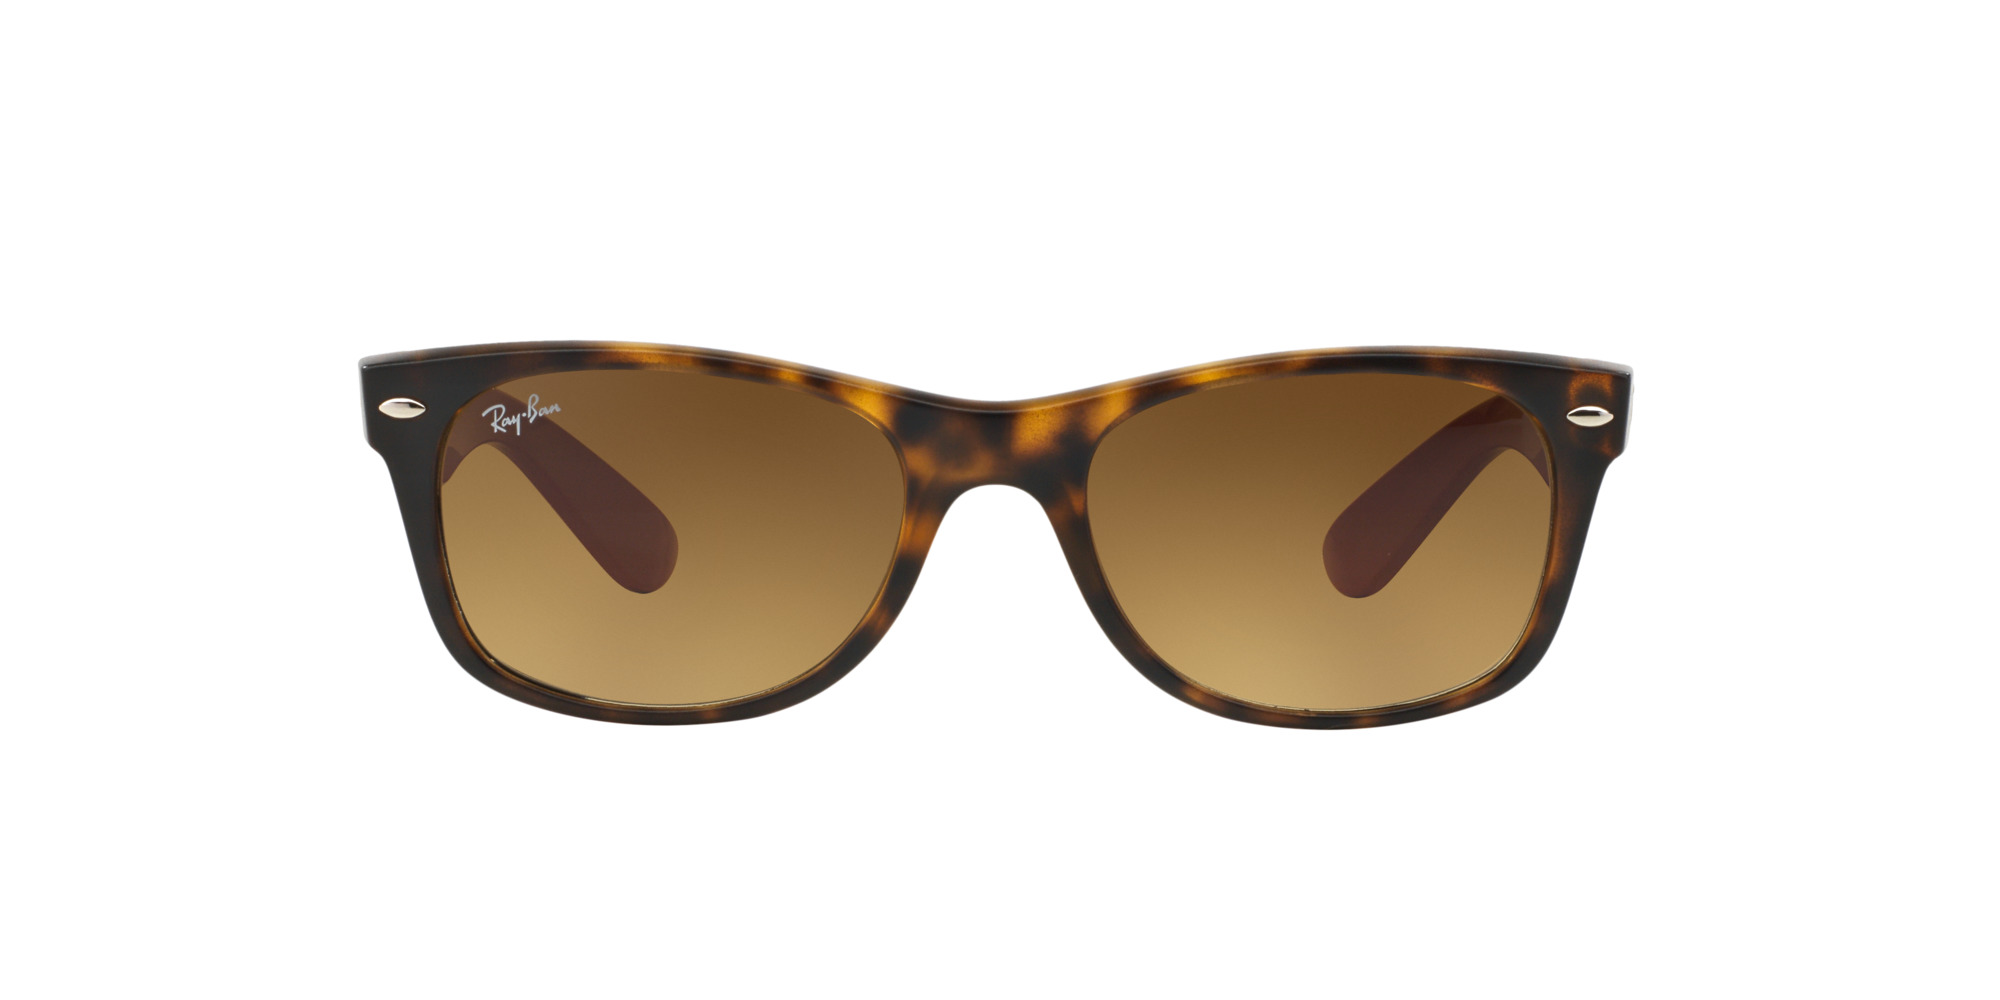 RAY-BAN NEW WAYFARER RB 2132 618185  52mm-360